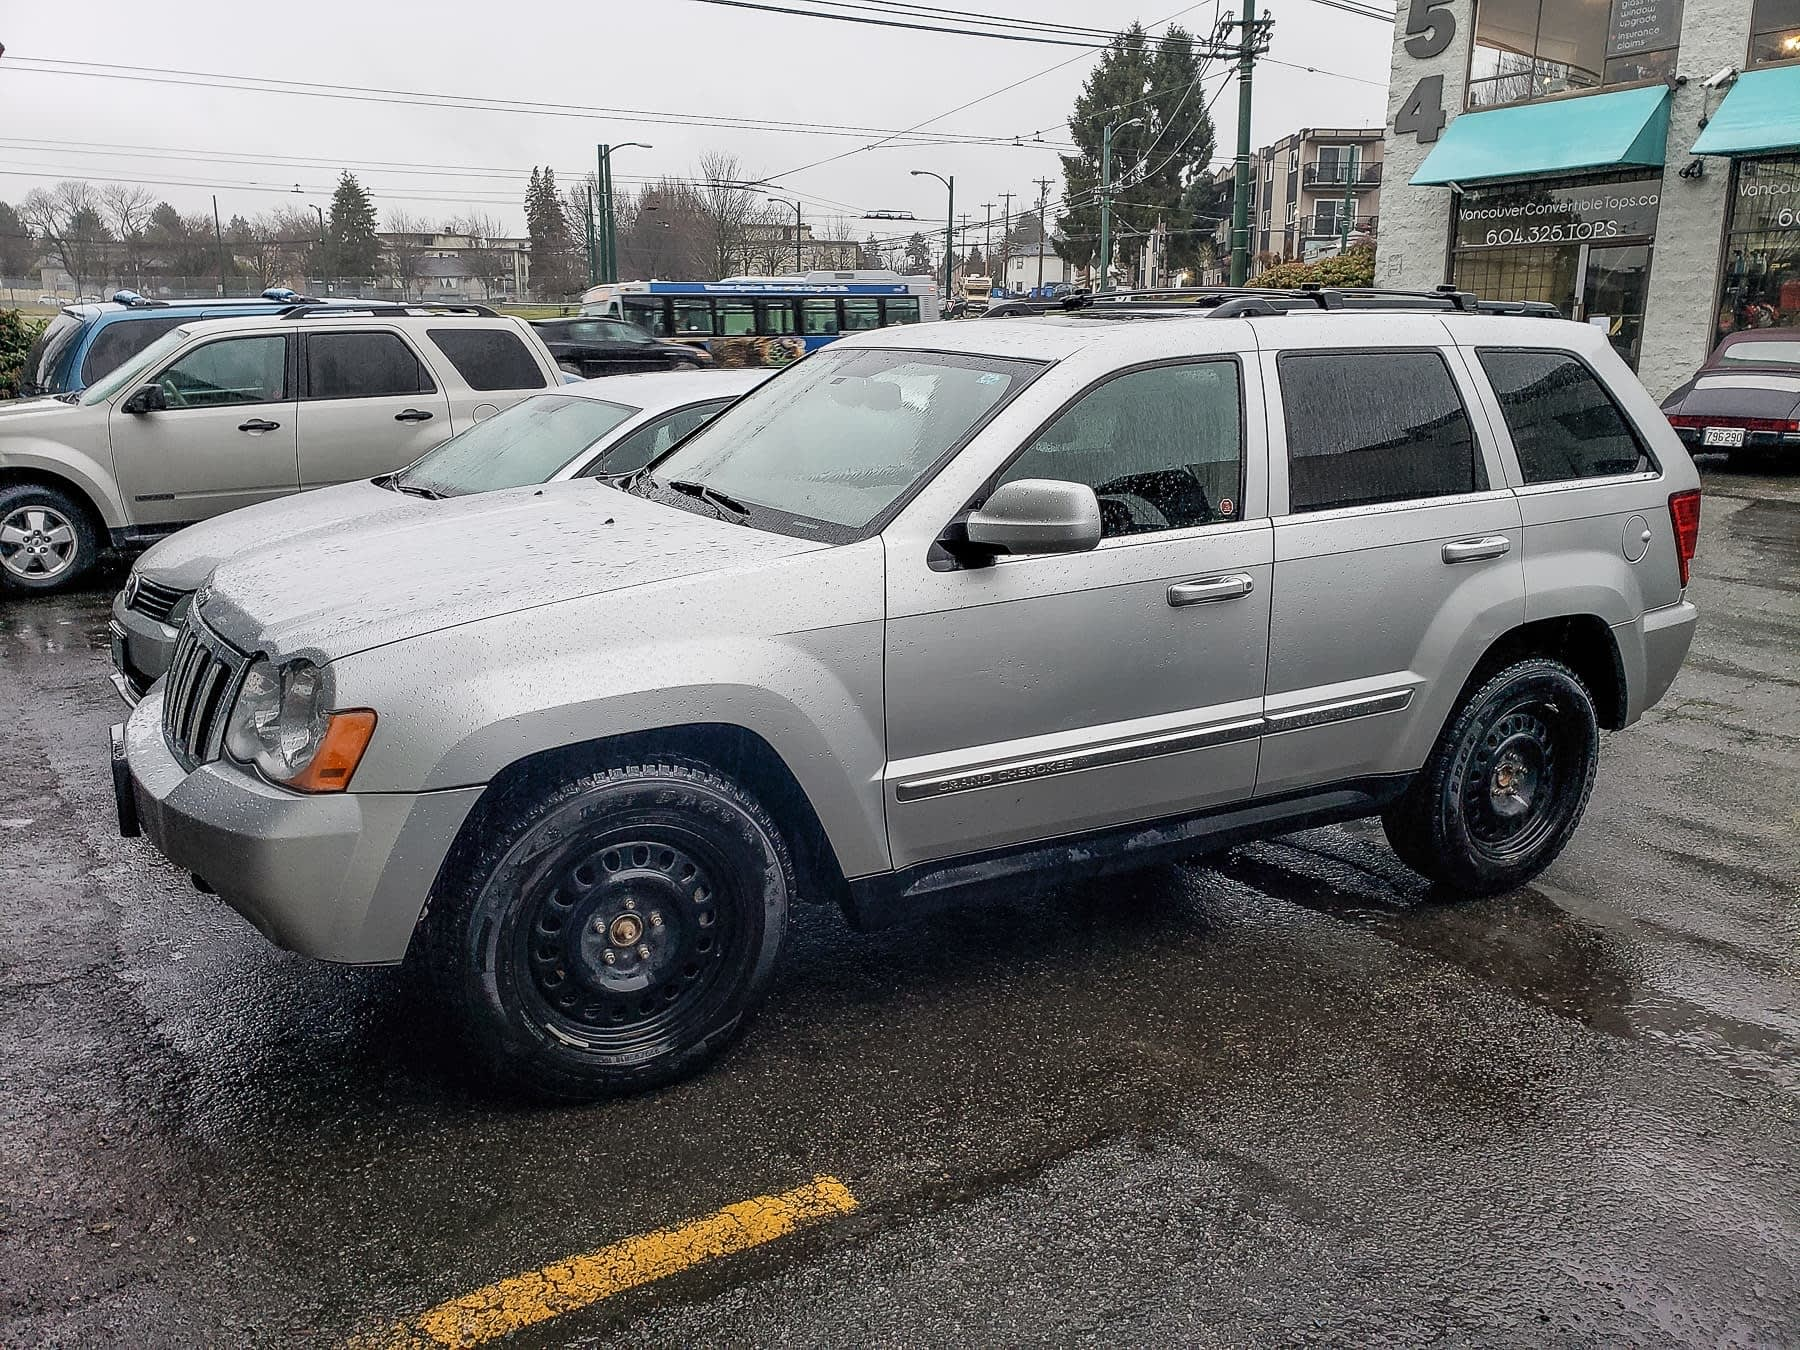 2007 Jeep Grand Cherokee, 3L Diesel, Fuel Tank Replacement